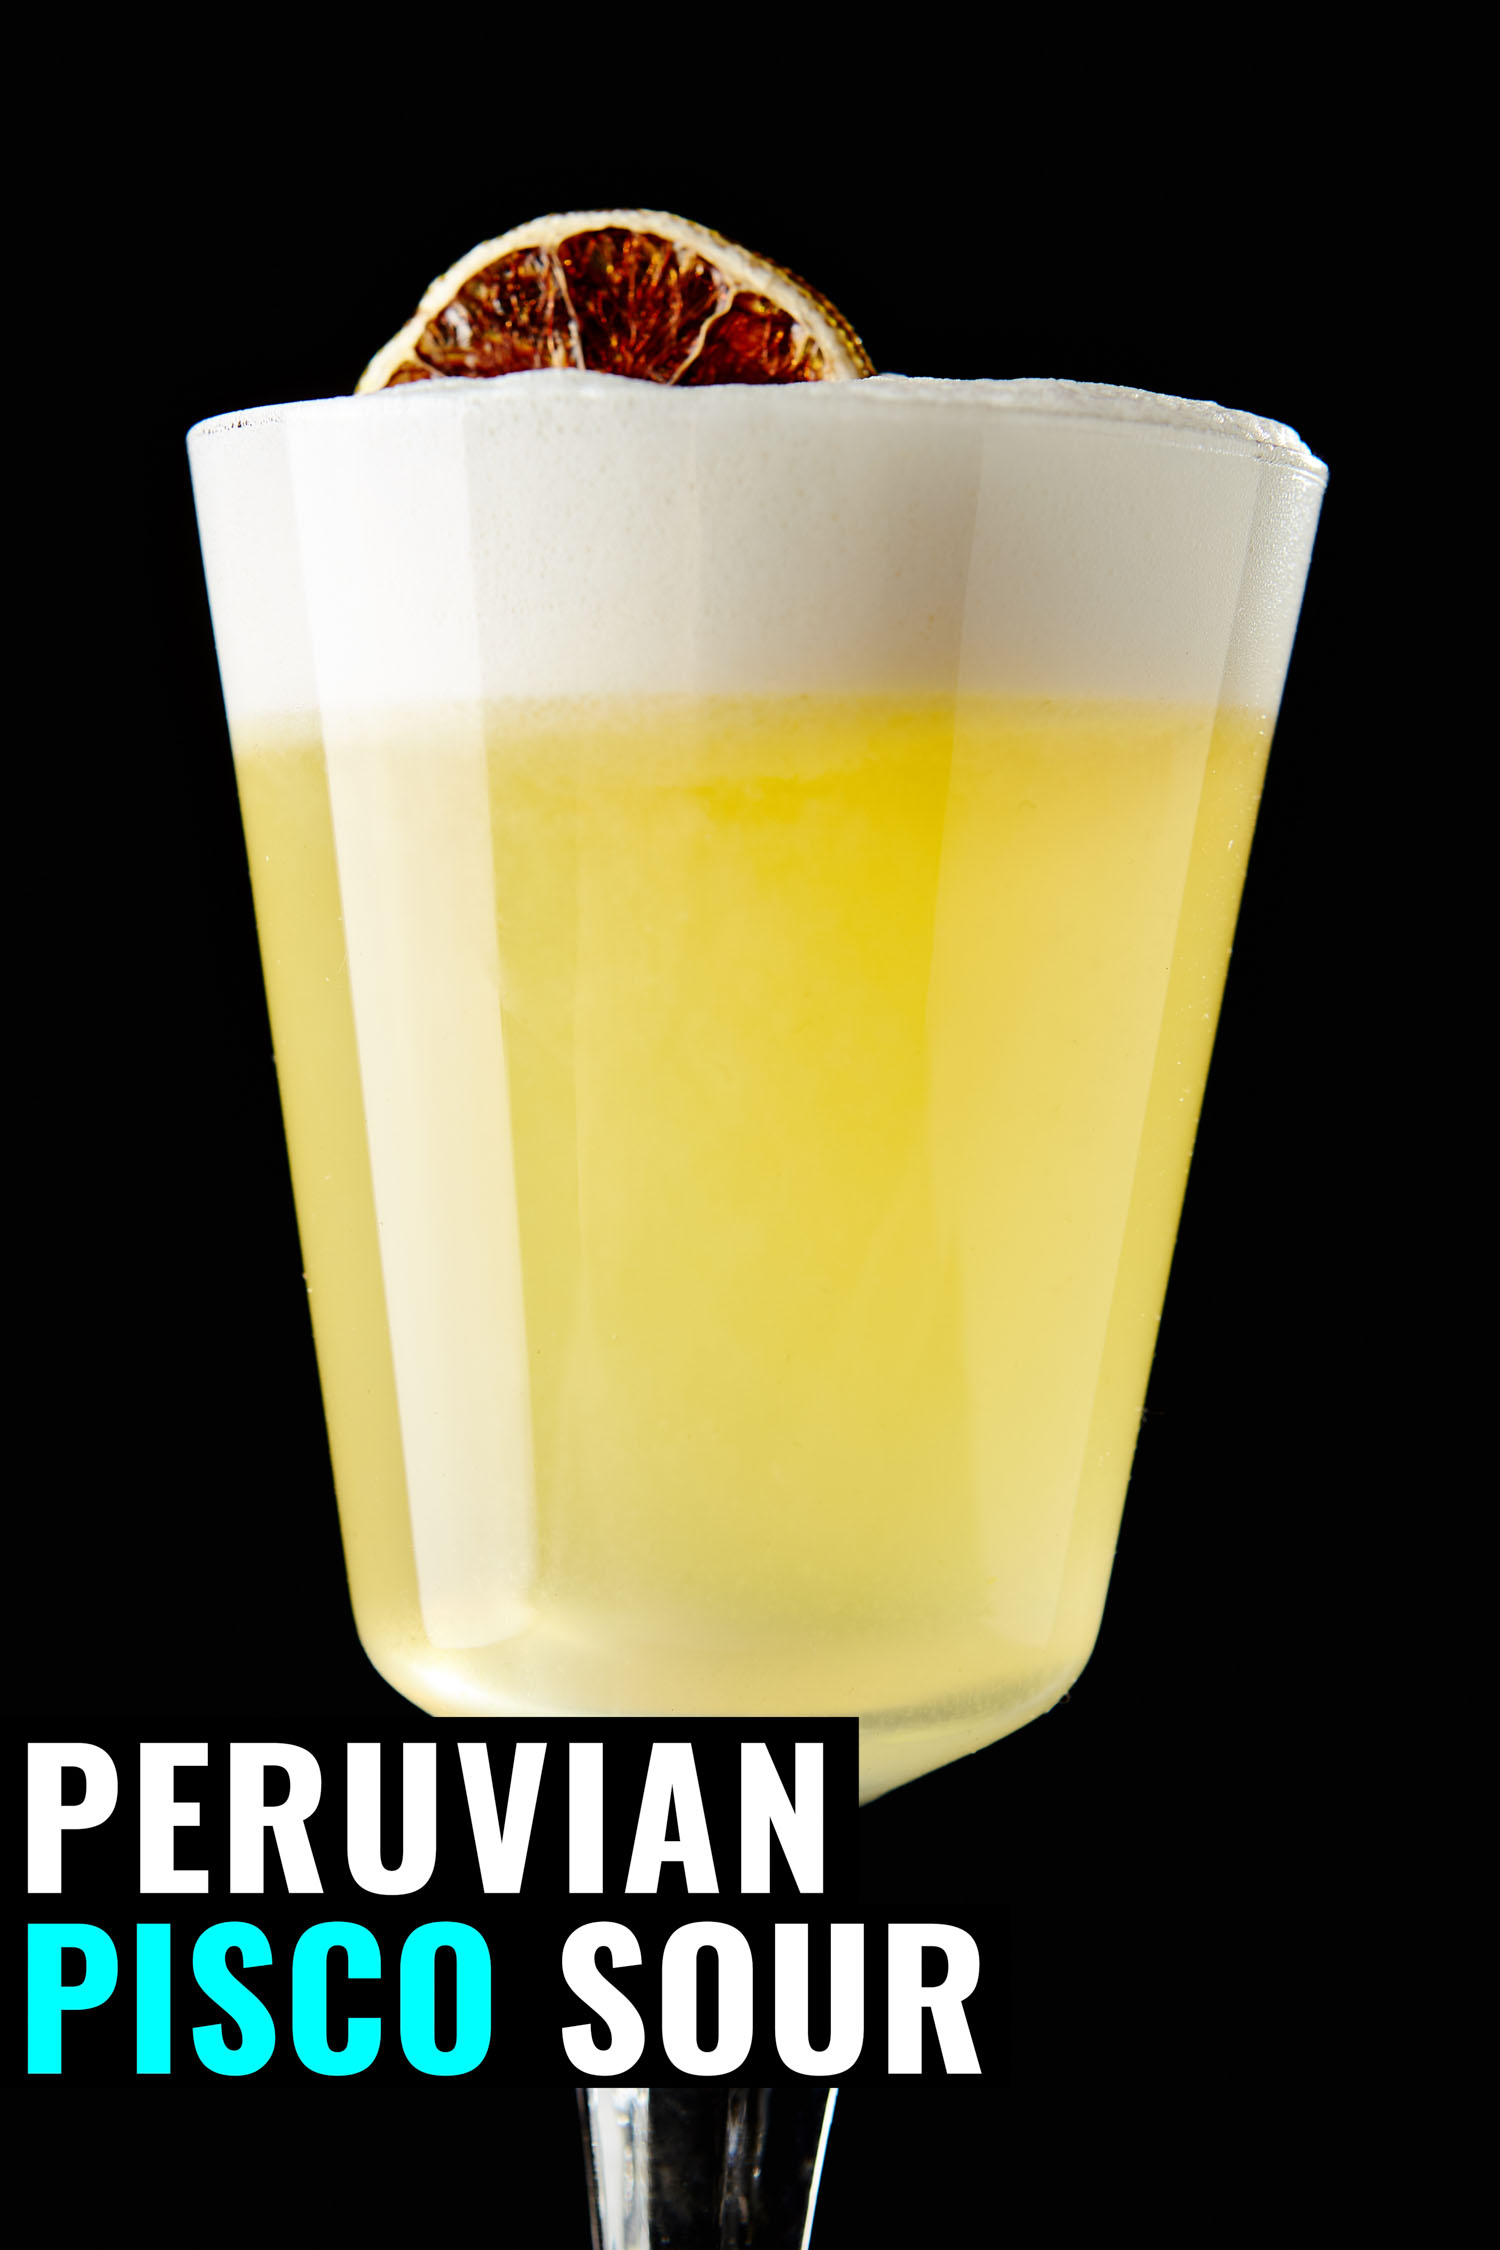 Peruvian pisco sour on a black background garnished with a blood orange.